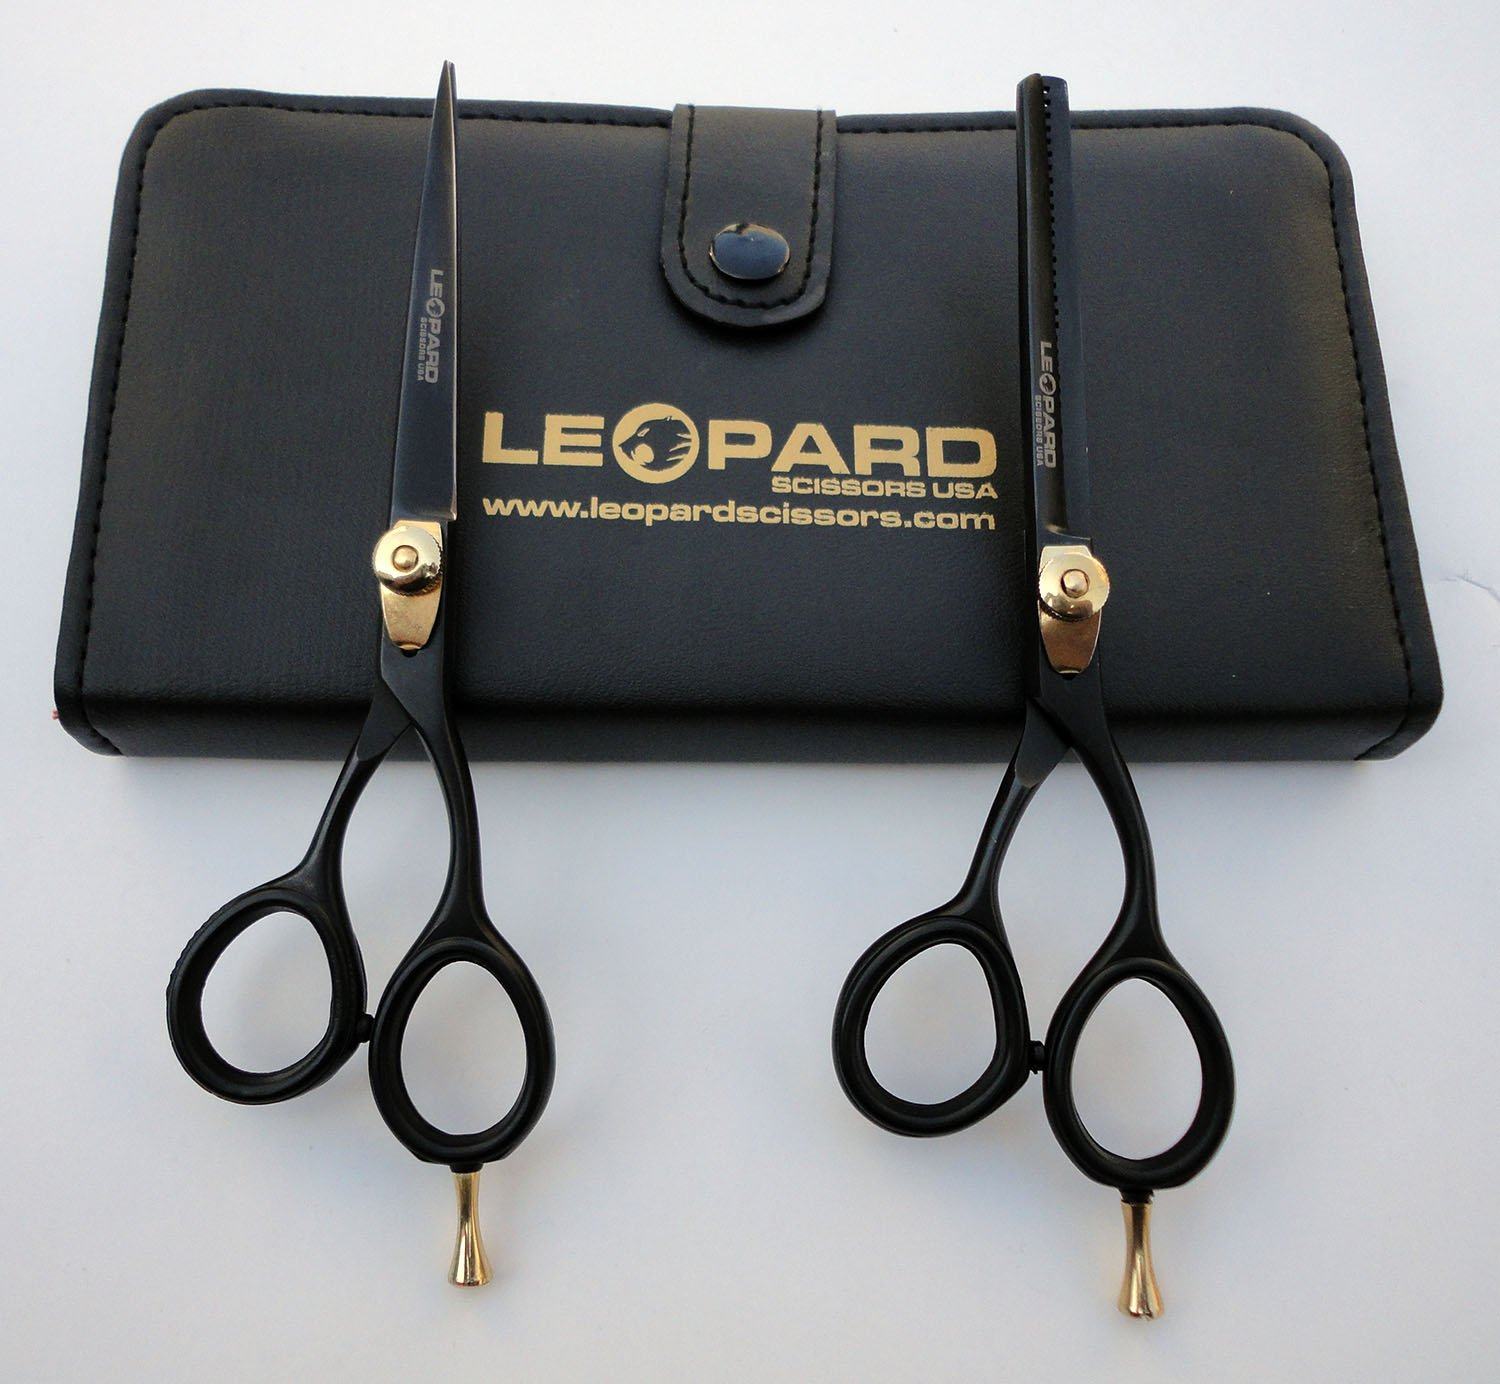 "Professional Hairdressing Right Hand Scissors & Thinner Hair Cutting Shears Barber Salon Styling Scissors Set 6.0"" Japanese Steel with Free Case Leopard Shears Bs-450"